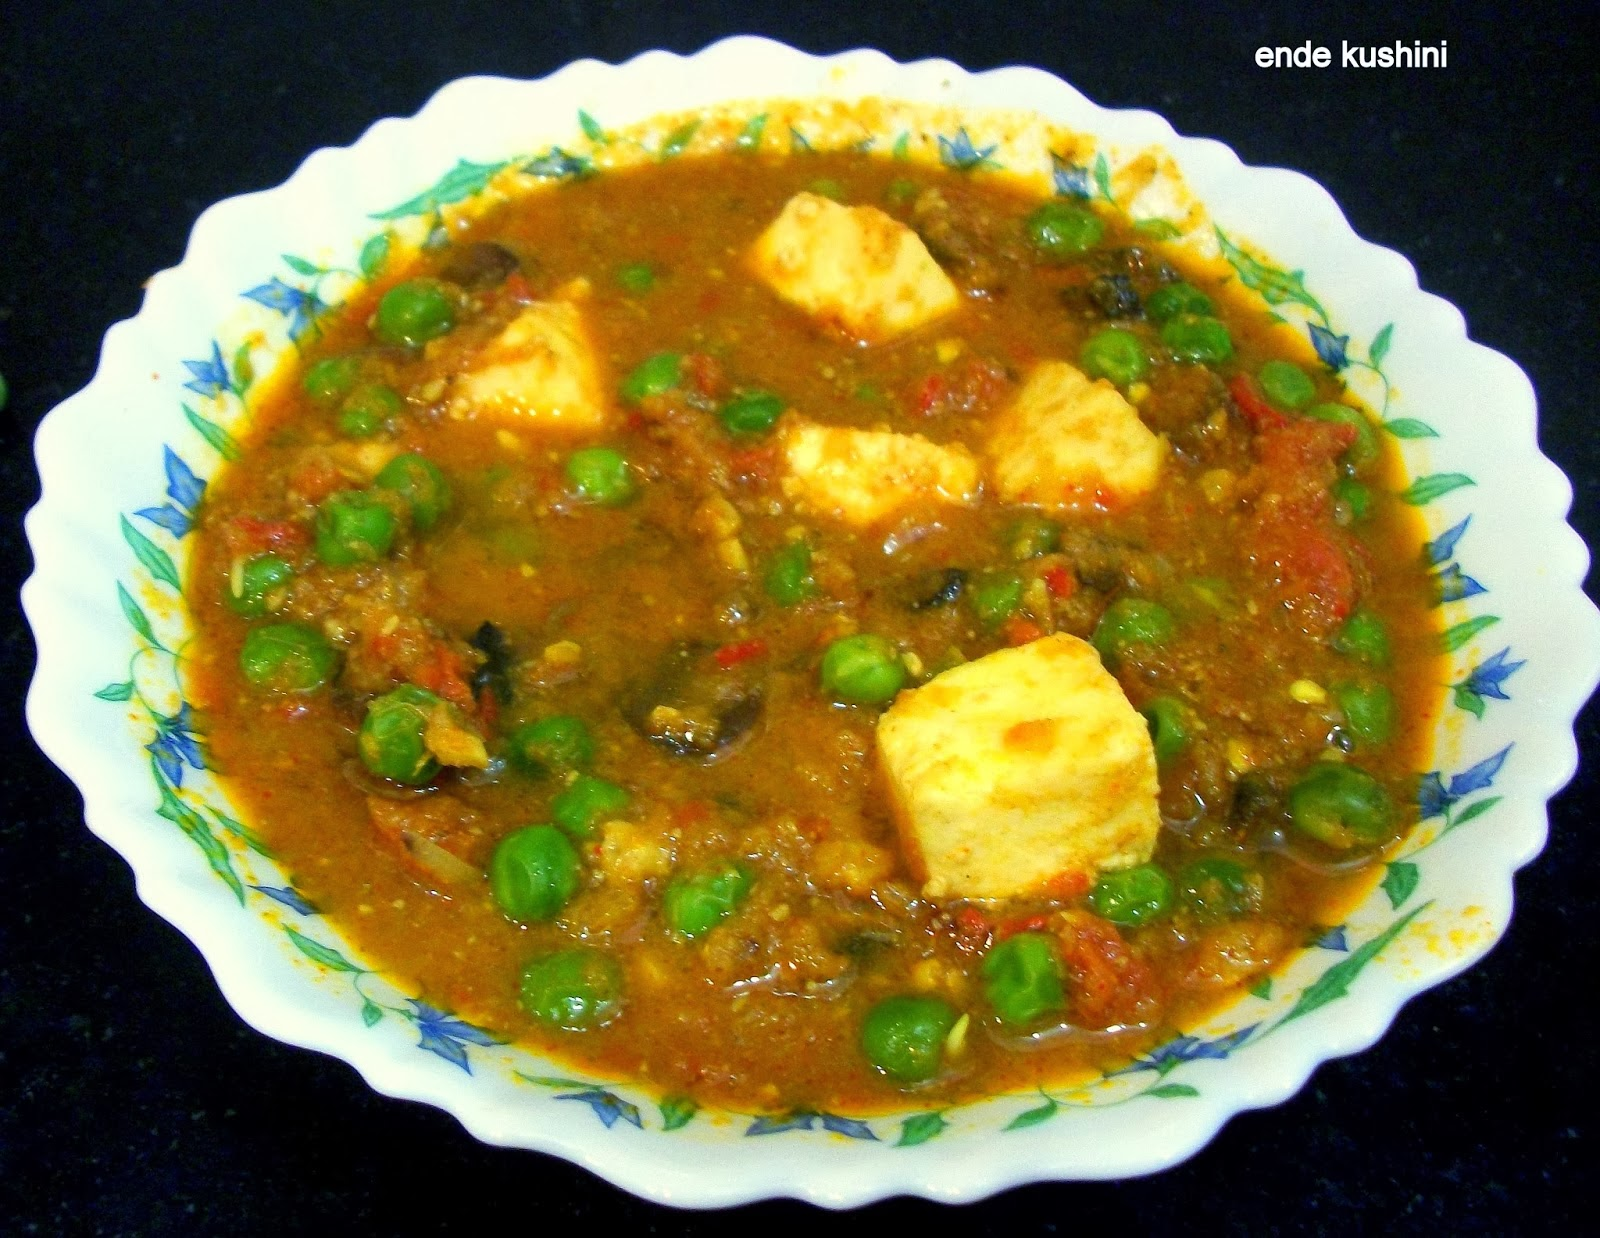 http://endekushini.blogspot.in/2014/02/paneer-mutter-masala-simple-gravy-with.html